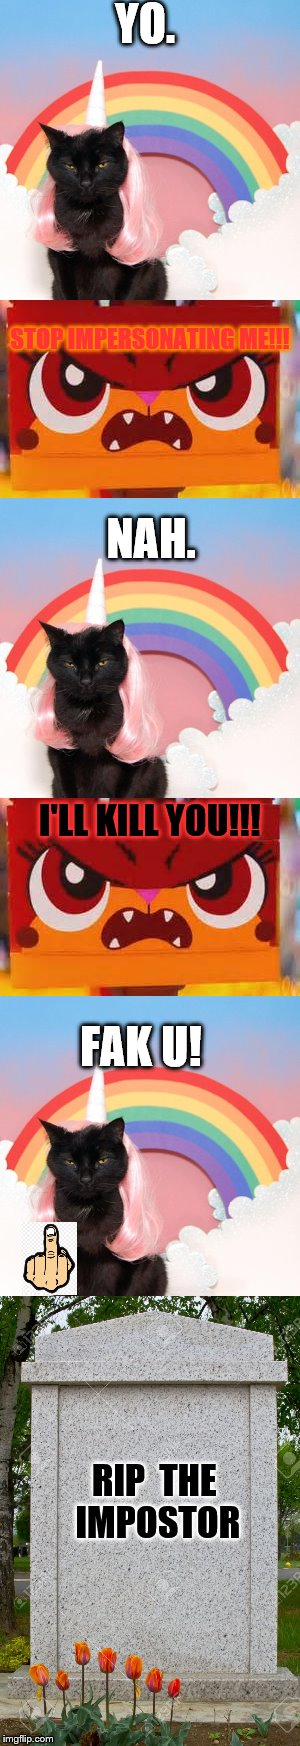 The impostor | YO. RIPTHE IMPOSTOR STOP IMPERSONATING ME!!! NAH. I'LL KILL YOU!!! FAK U! | image tagged in unikitty,impostor,angry,gravestone | made w/ Imgflip meme maker